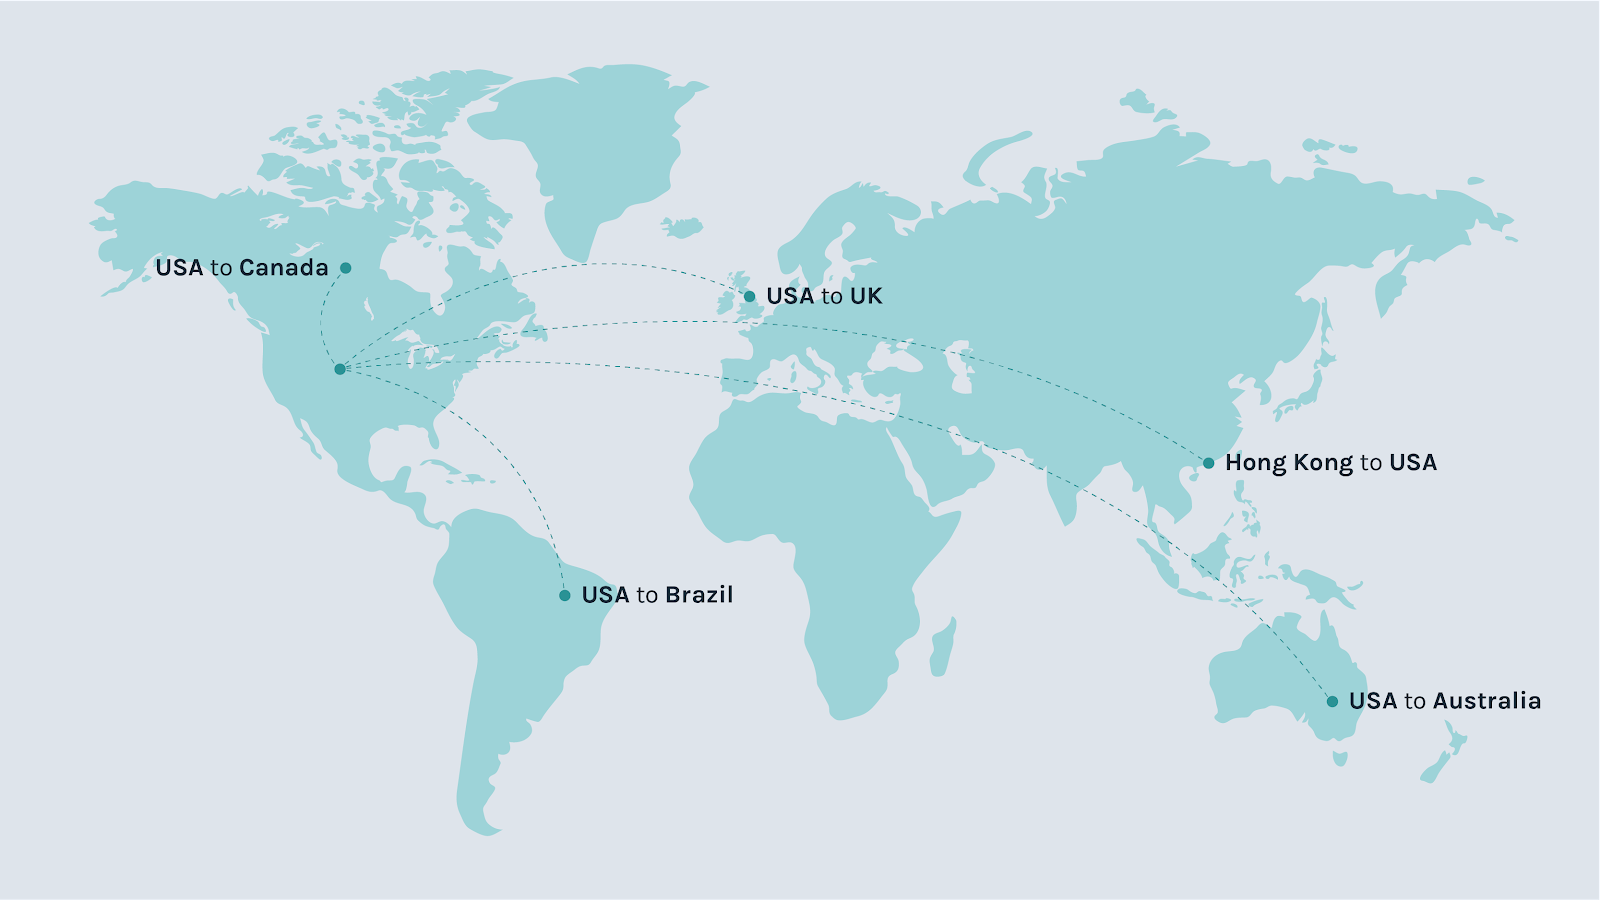 Top five service lanes for cross-border shipping